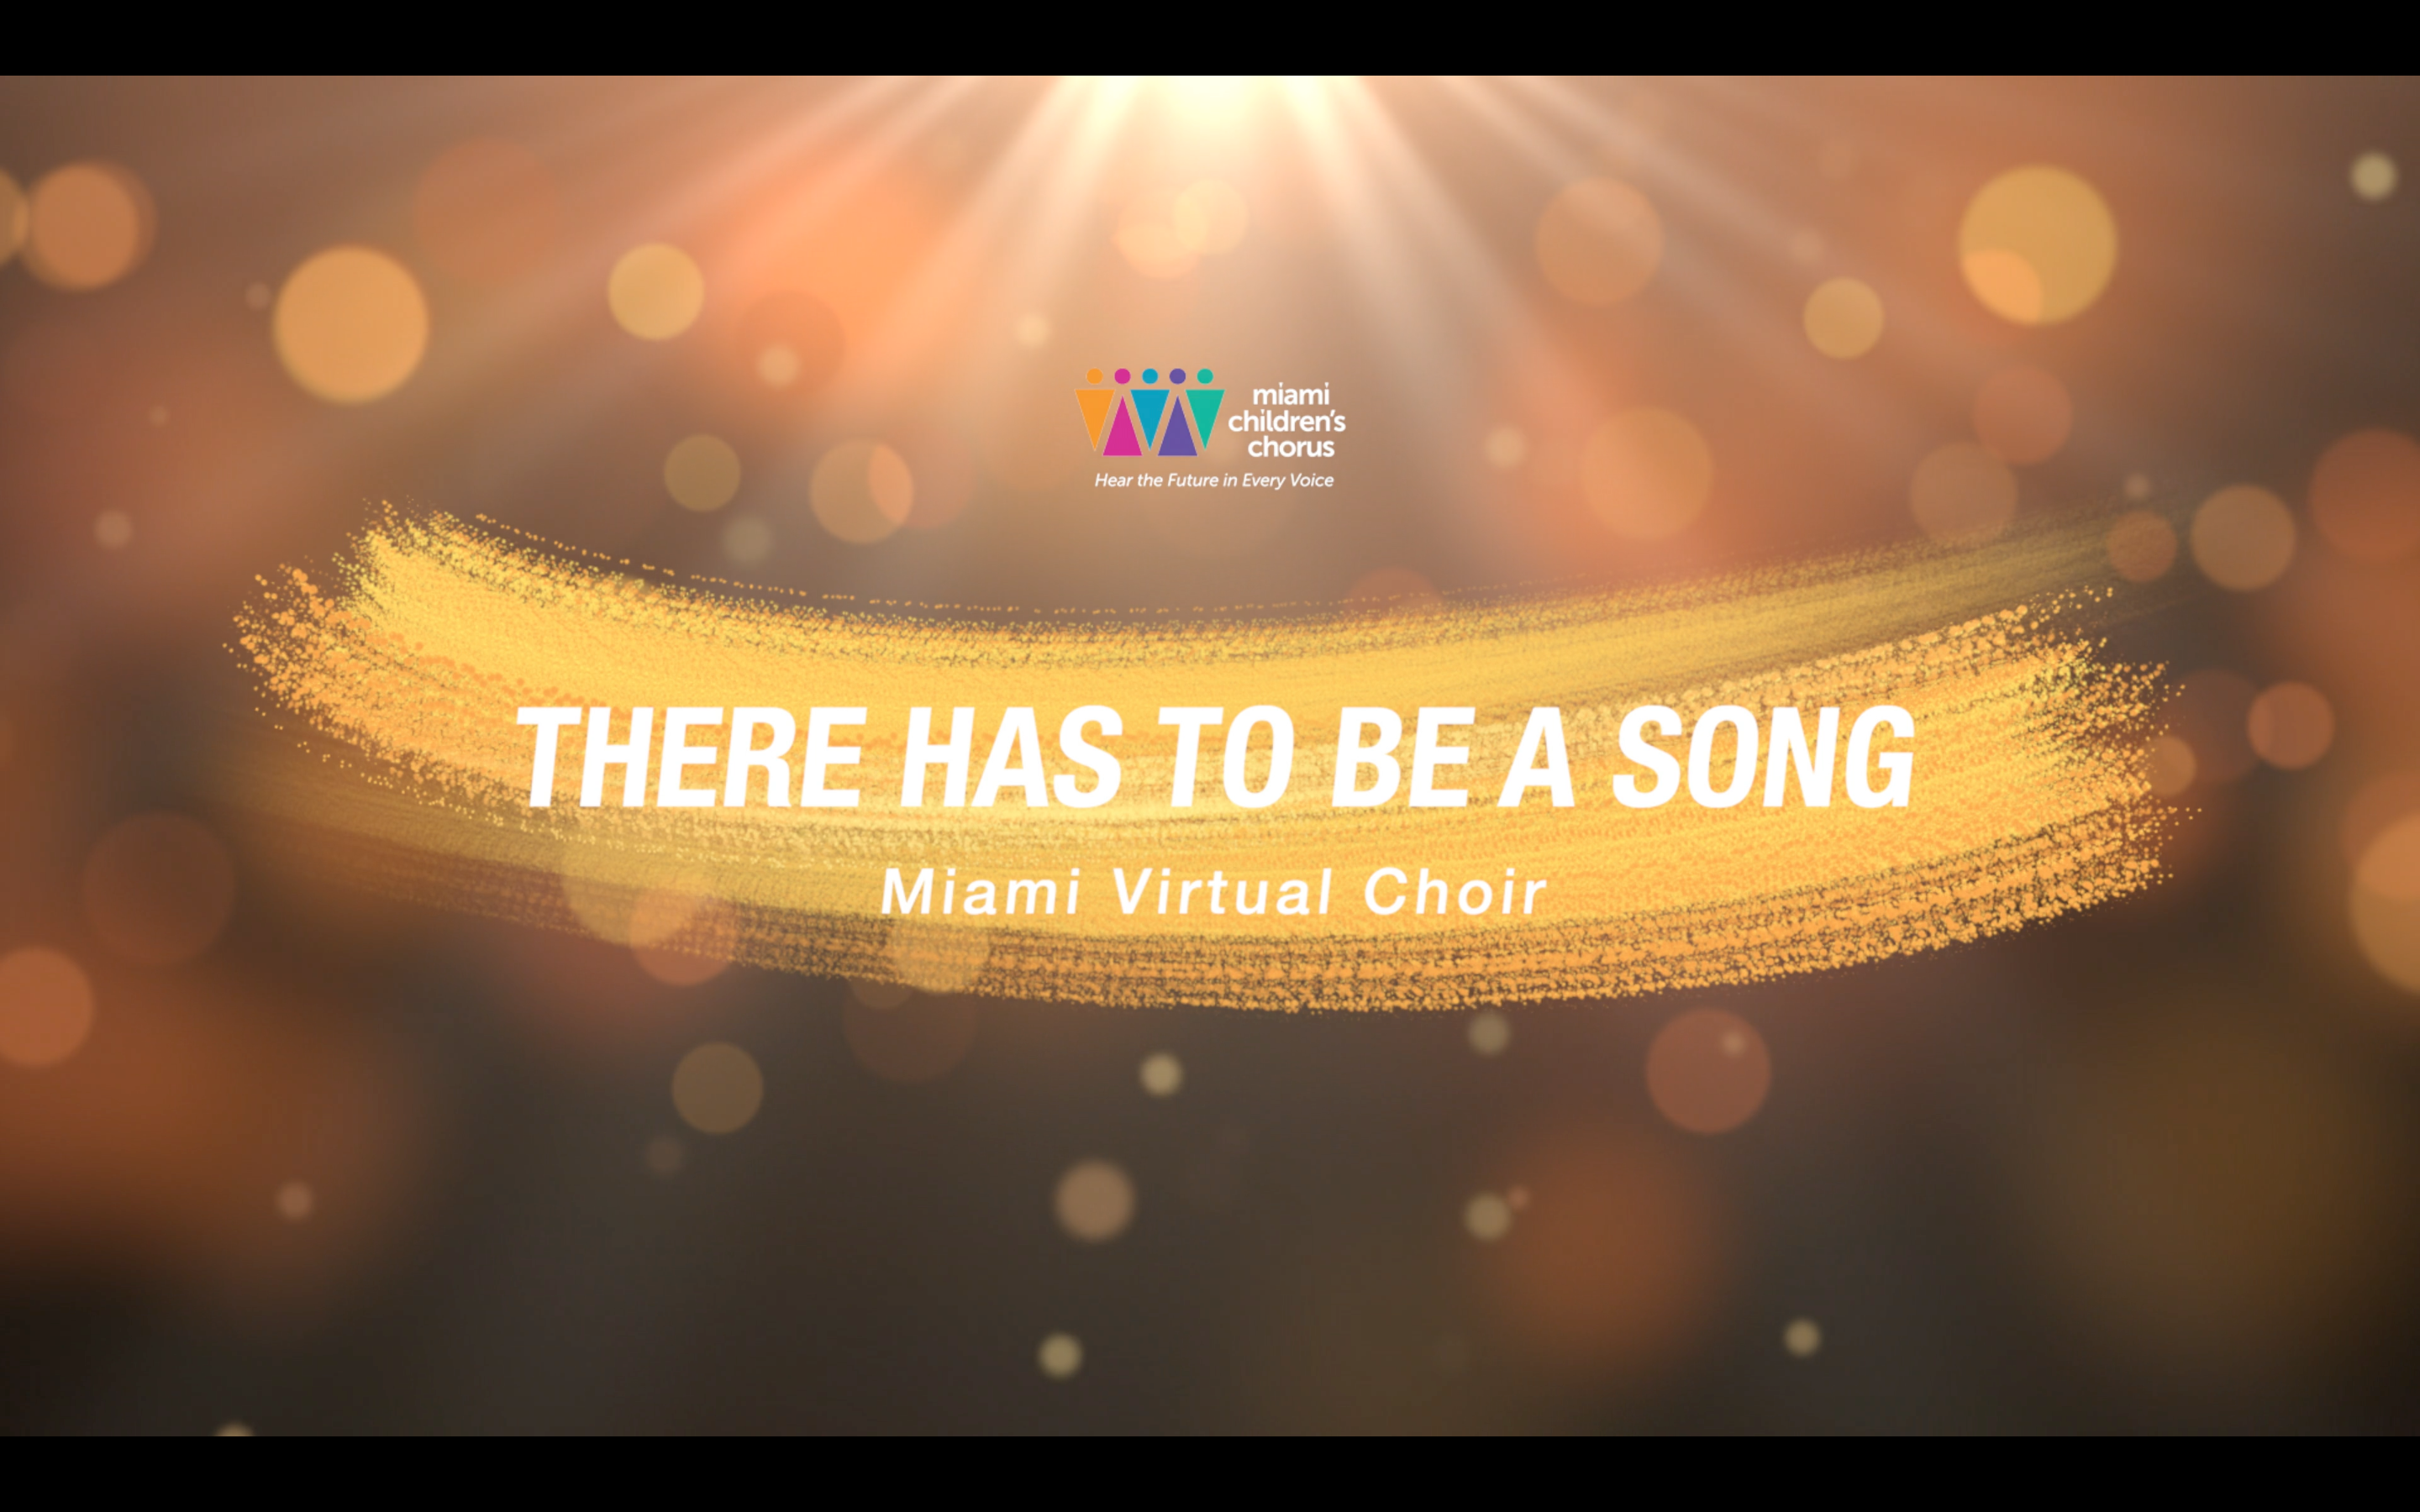 Miami Virtual Choir - There Has To Be A Song